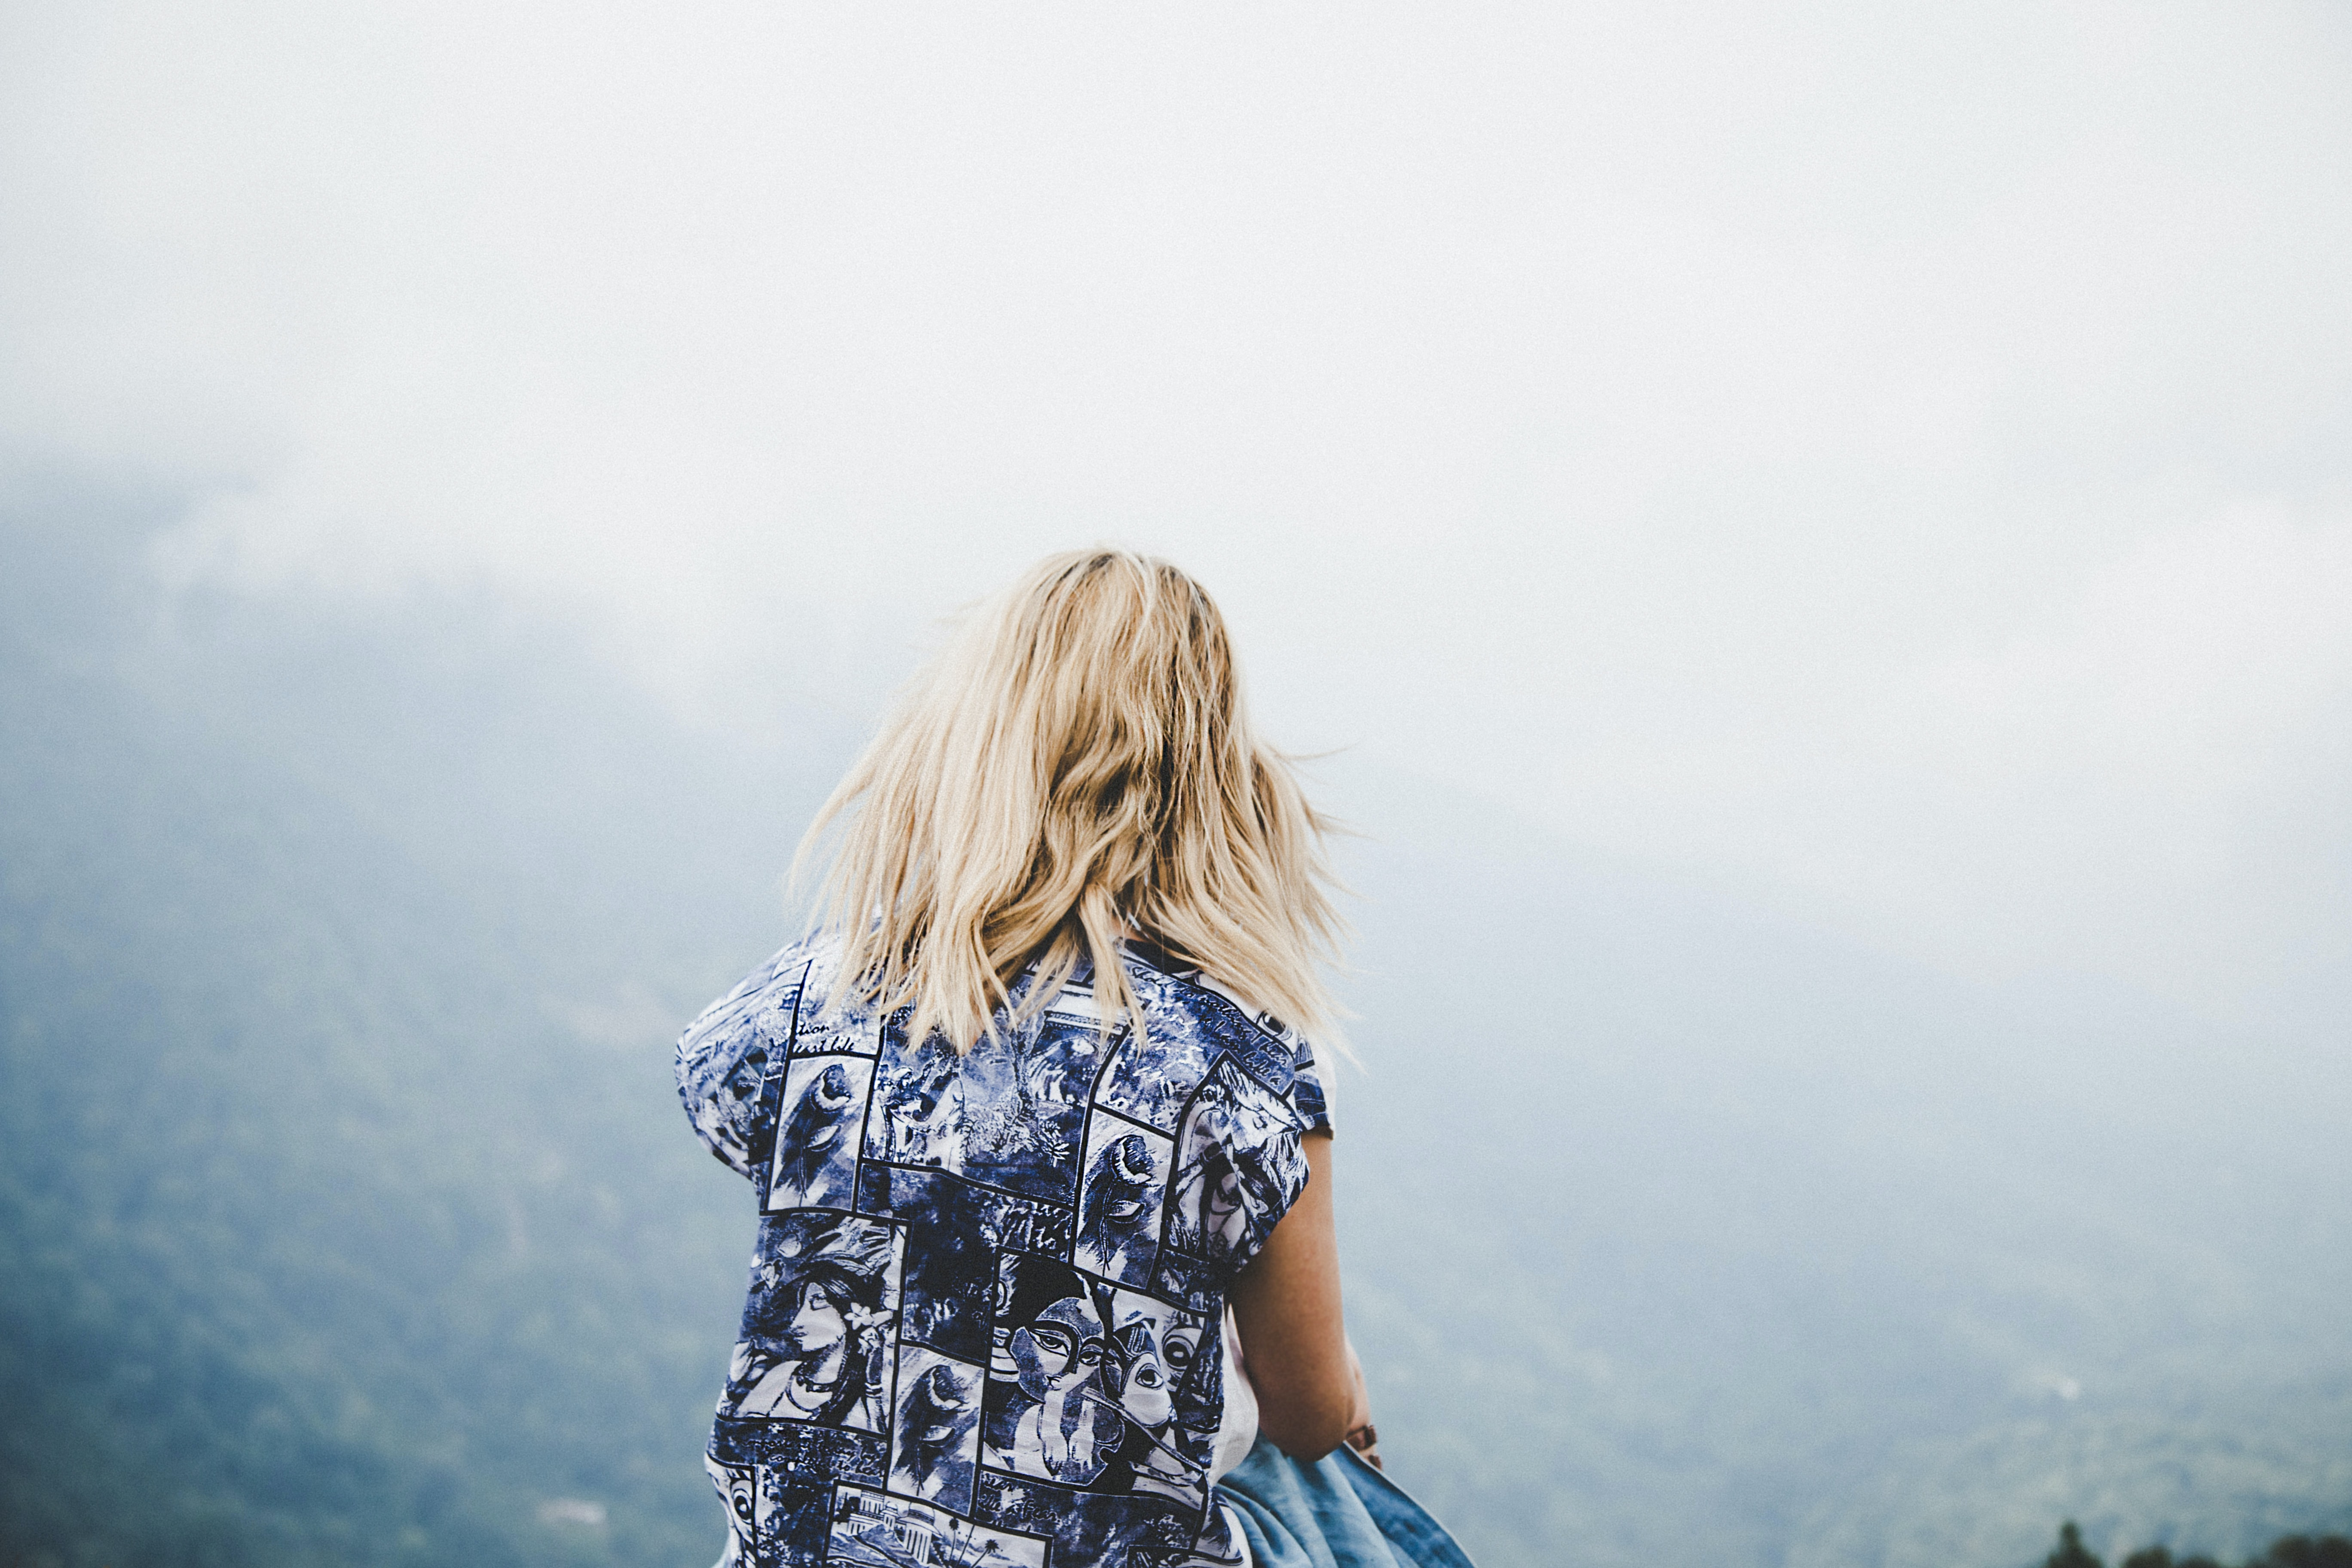 Woman with blonde hair and blue dress standing on a hill, looking at fog covering mountain